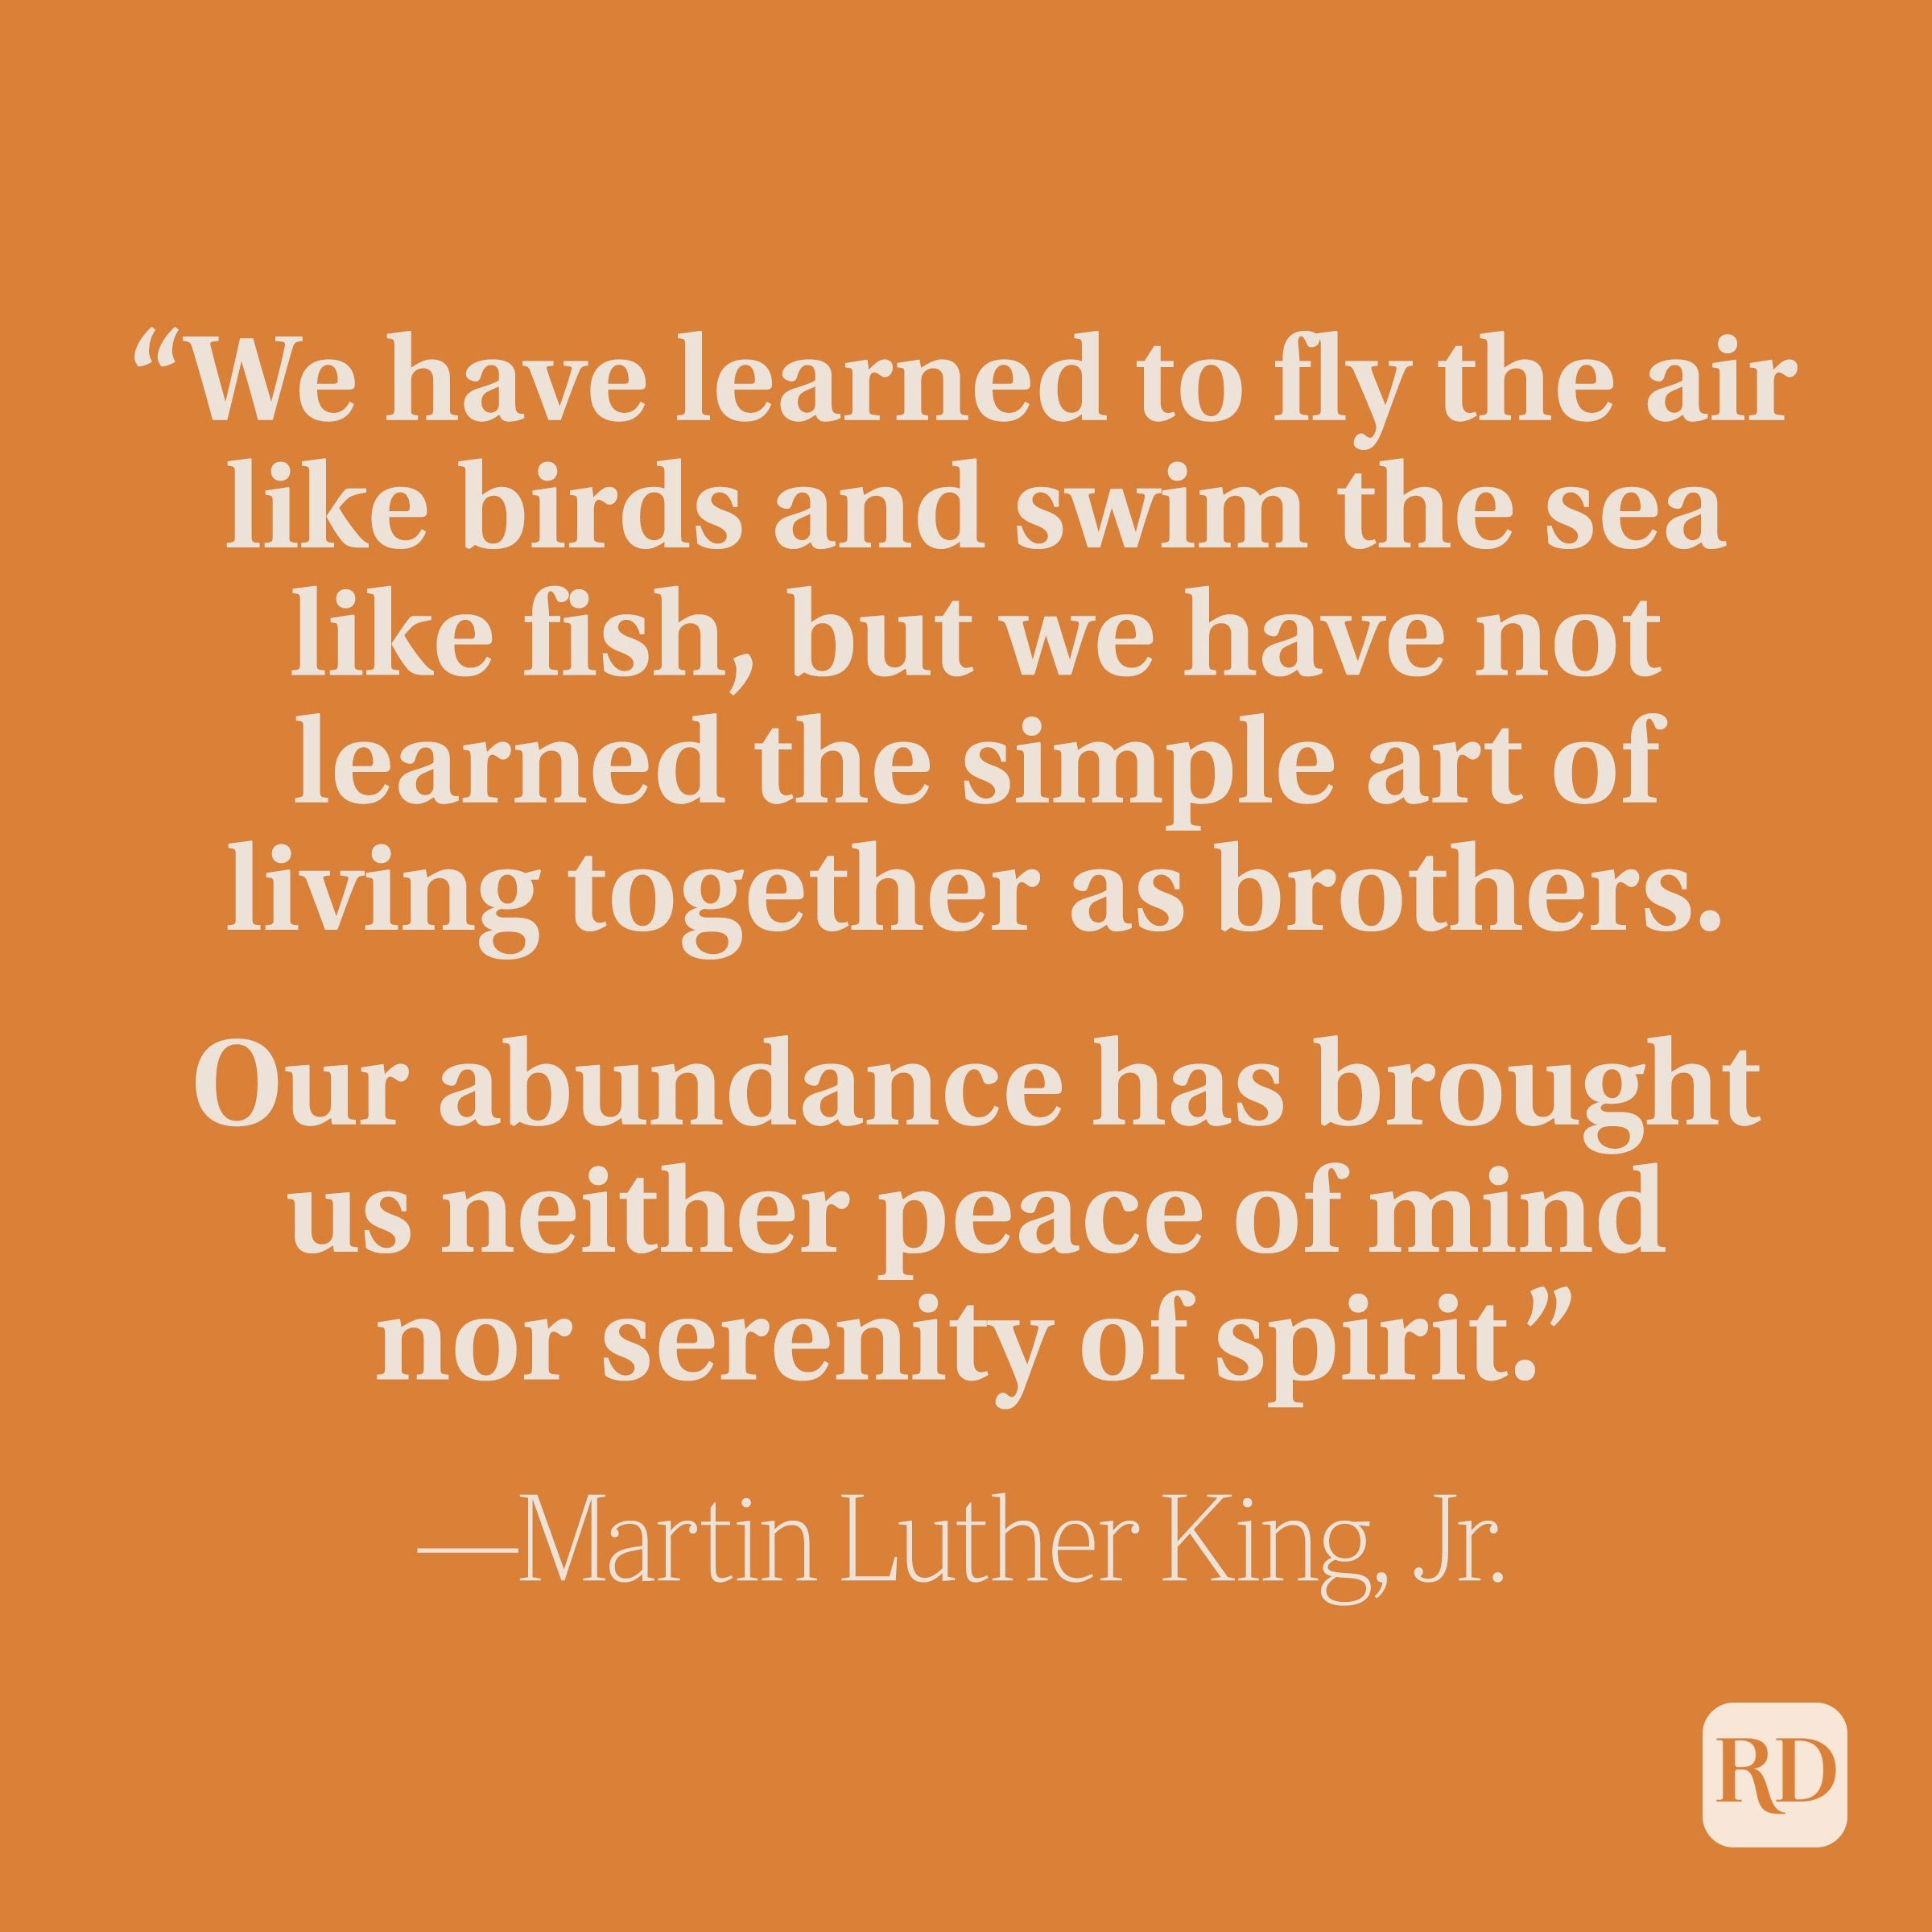 """""""We have learned to fly the air like birds and swim the sea like fish, but we have not learned the simple art of living together as brothers. Our abundance has brought us neither peace of mind nor serenity of spirit."""" —Martin Luther King, Jr."""